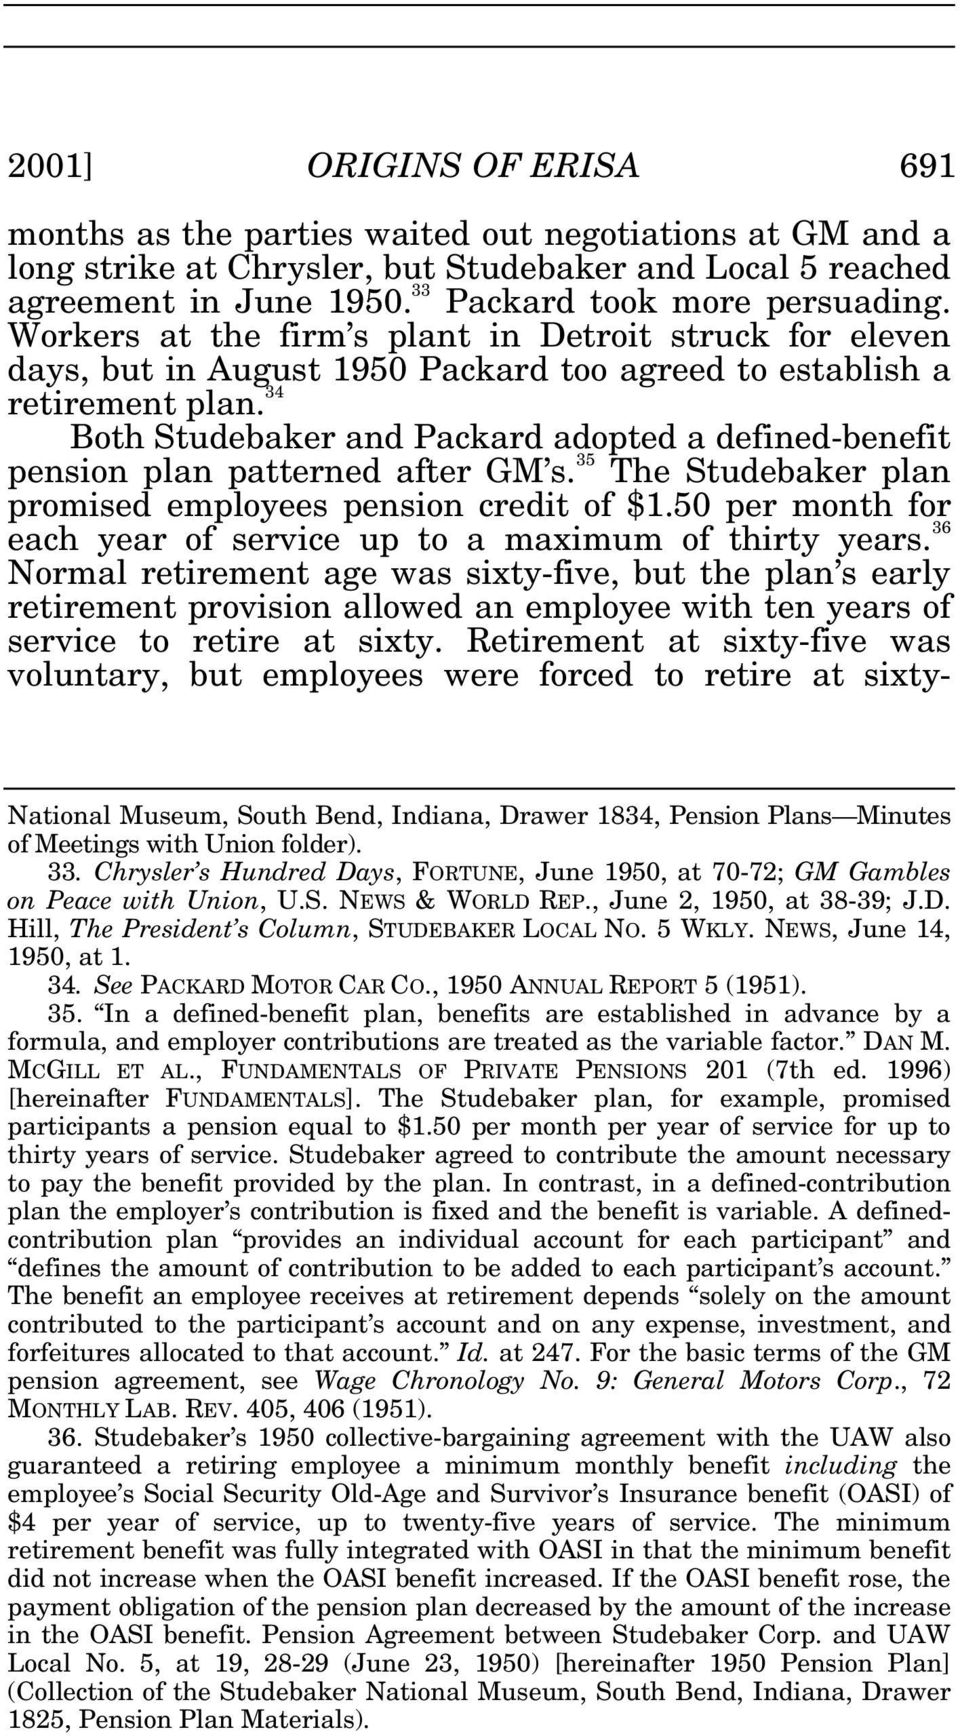 34 Both Studebaker and Packard adopted a defined-benefit pension plan patterned after GM s. 35 The Studebaker plan promised employees pension credit of $1.